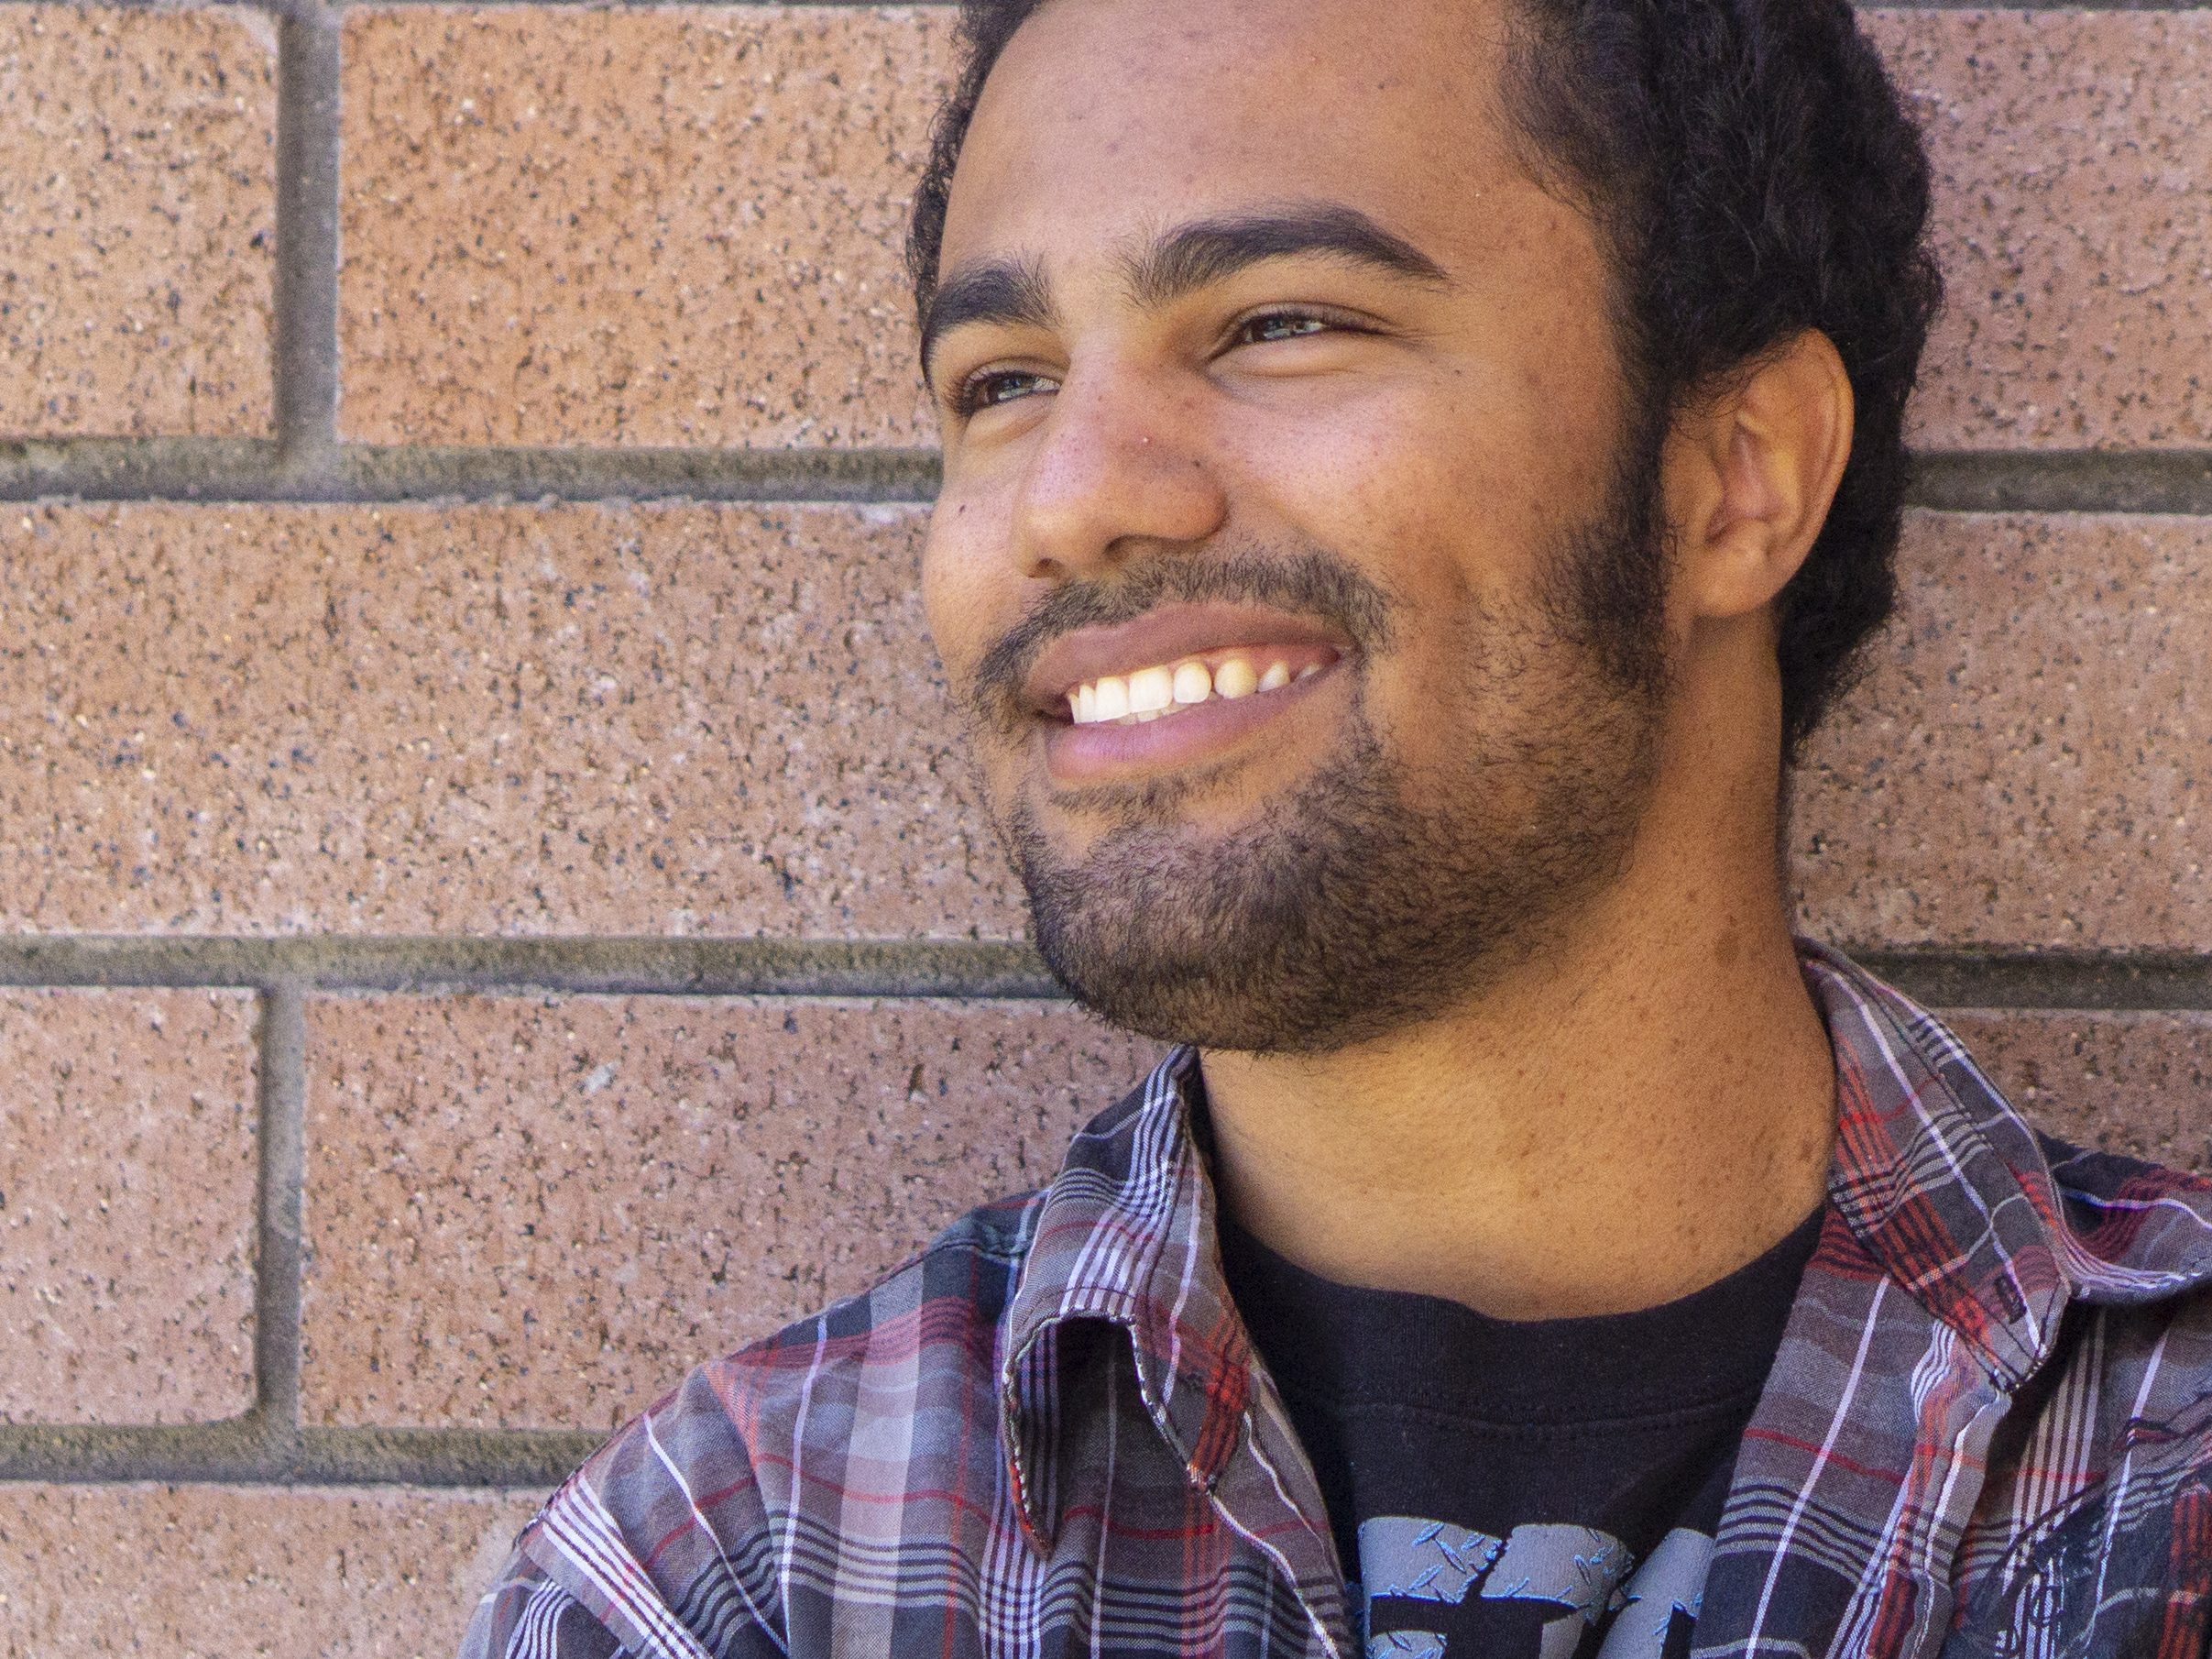 Close-up portrait of Fearious, a young black man, standing in front of an orange brick wall and smiling